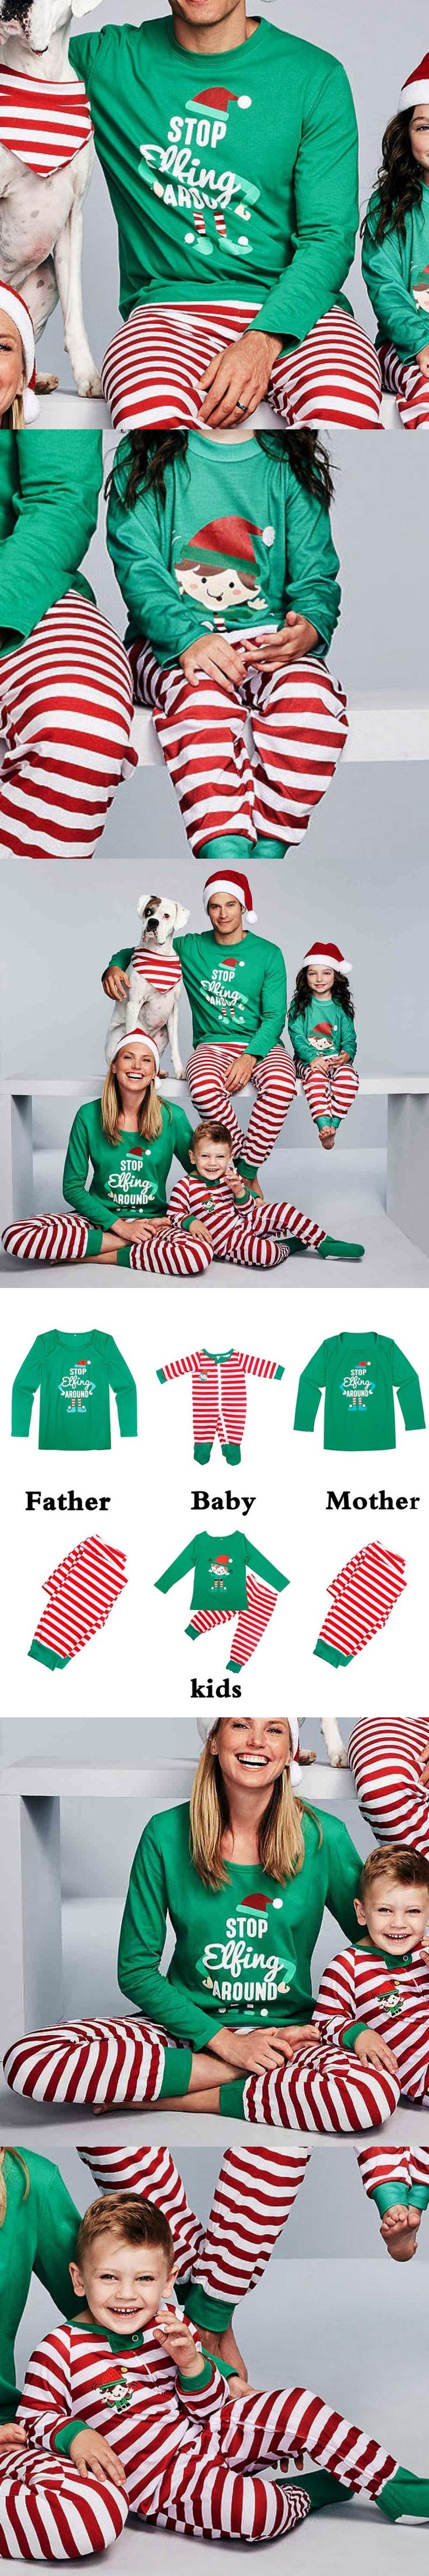 2017 New Hot Family Christmas Pajamas Matching Christmas Look Christmas Print Parents Set 4Kinds Warm Clothes  For Family